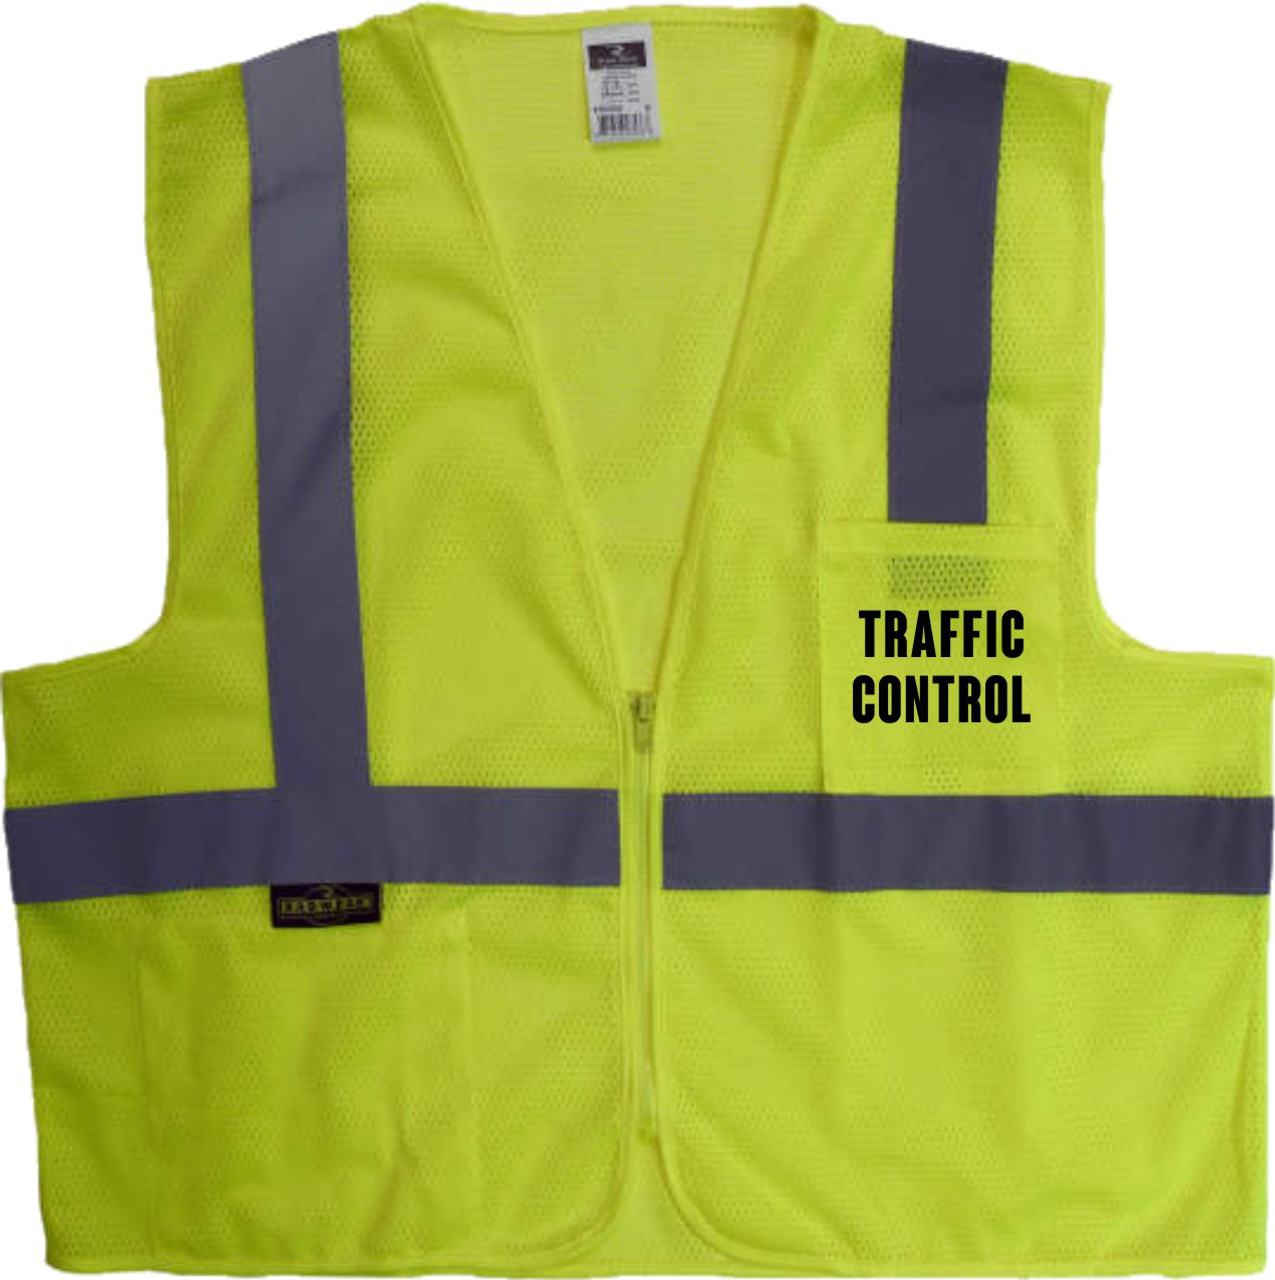 Safety Green Safety Vest Class 2 Printed with TRAFFIC CONTROL  on front and back